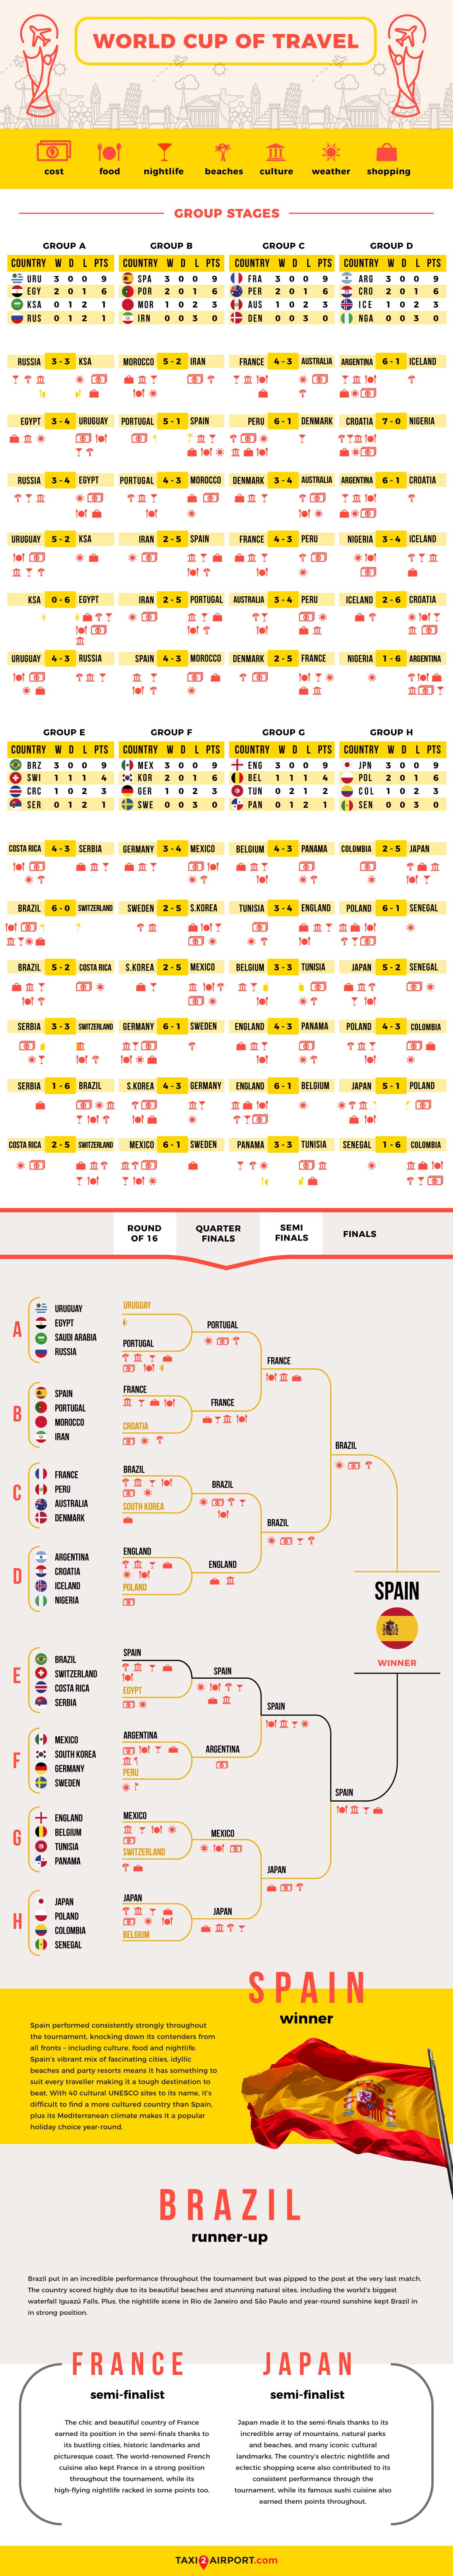 World Cup of Travel Infographic